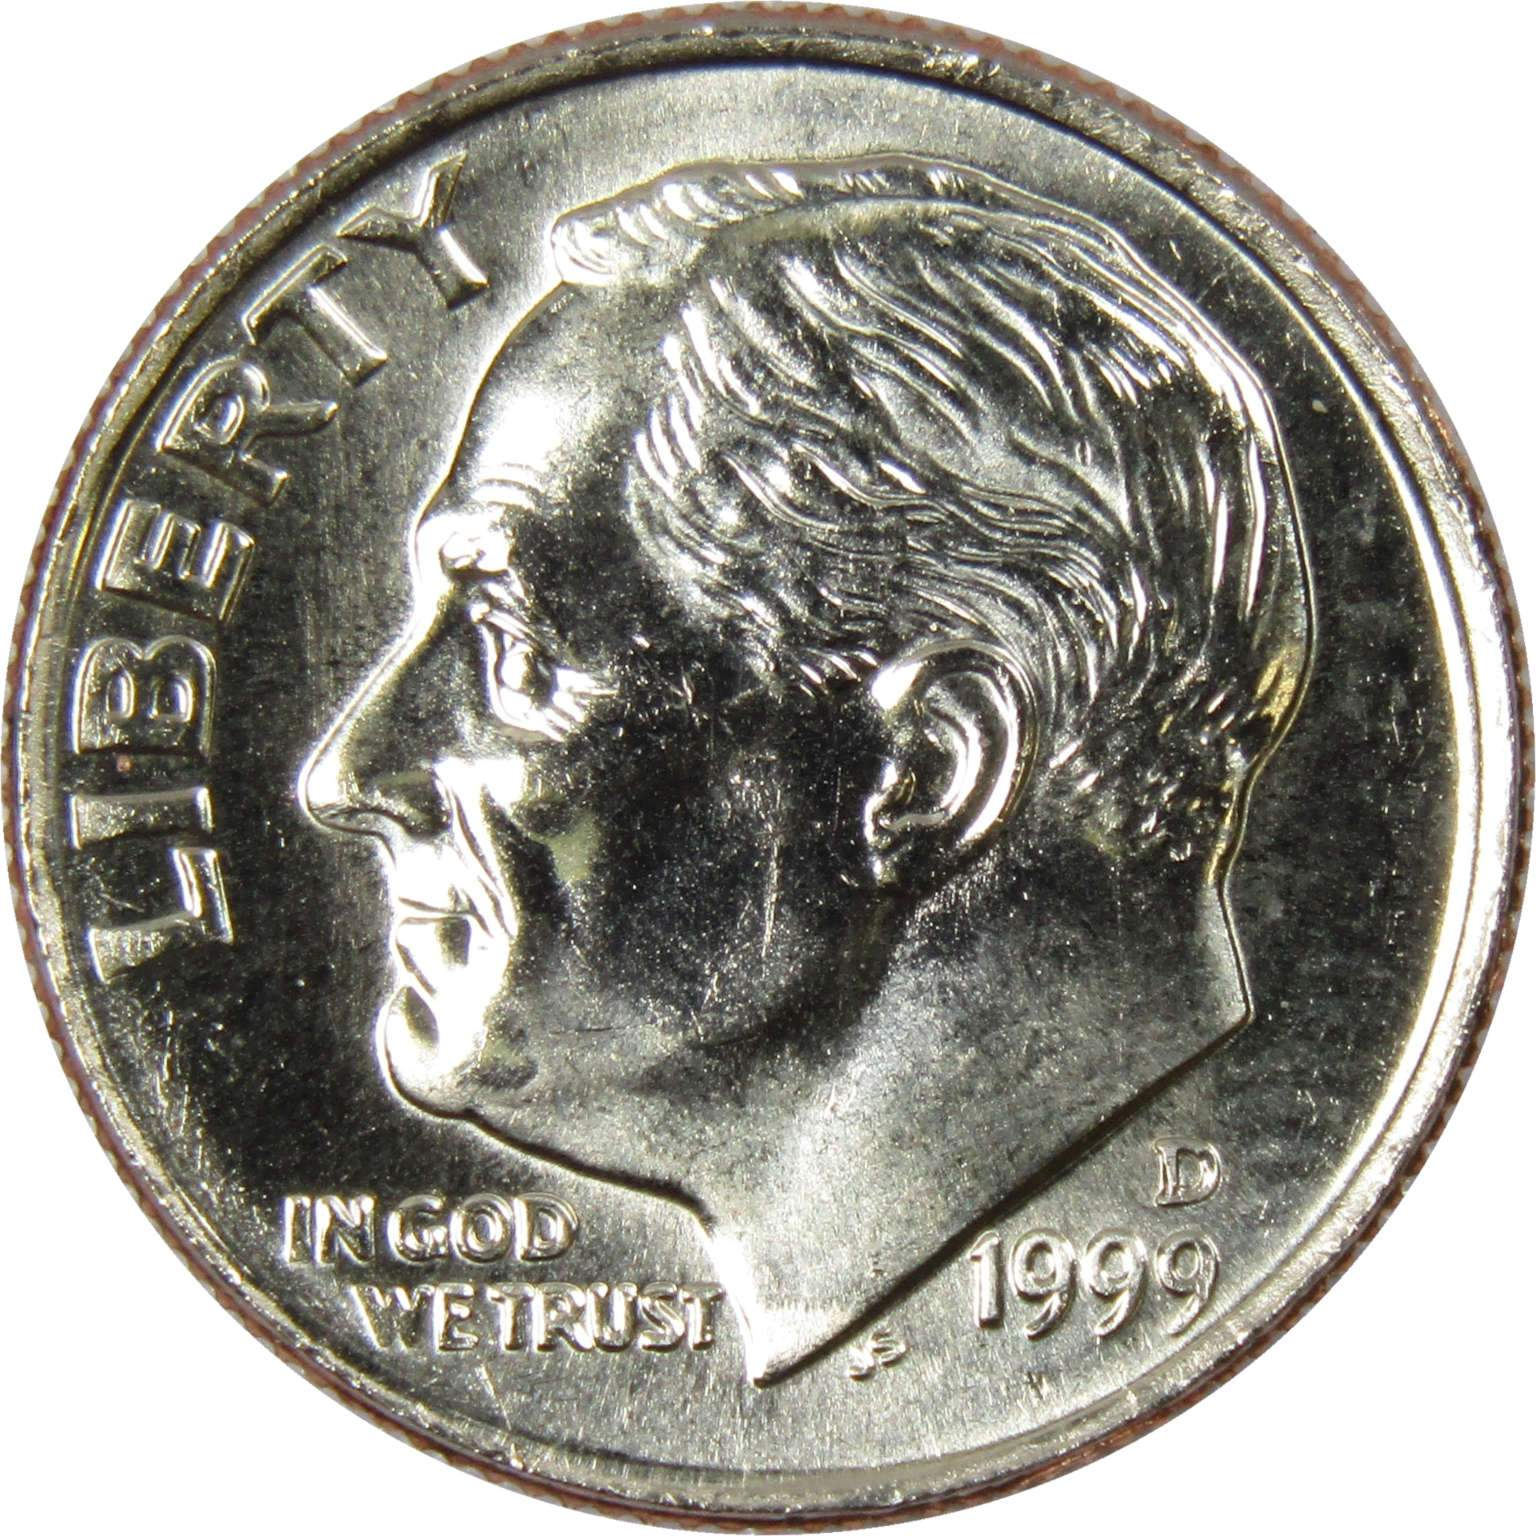 2008 P 10c Roosevelt Dime US Coin BU Uncirculated Mint State